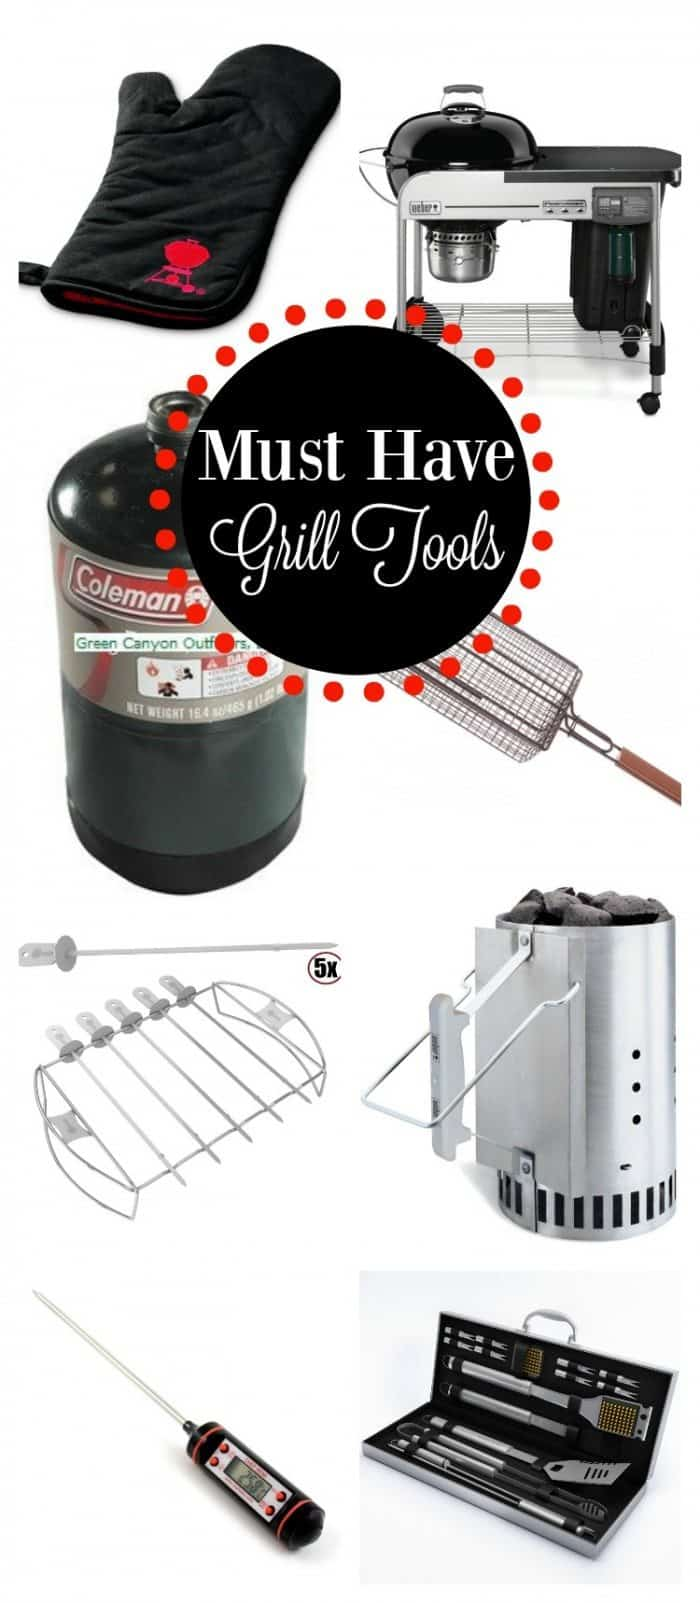 Does the warm weather have you itching to grill We put together our Must Have Grilingl Tools to make it the best grill season ever.